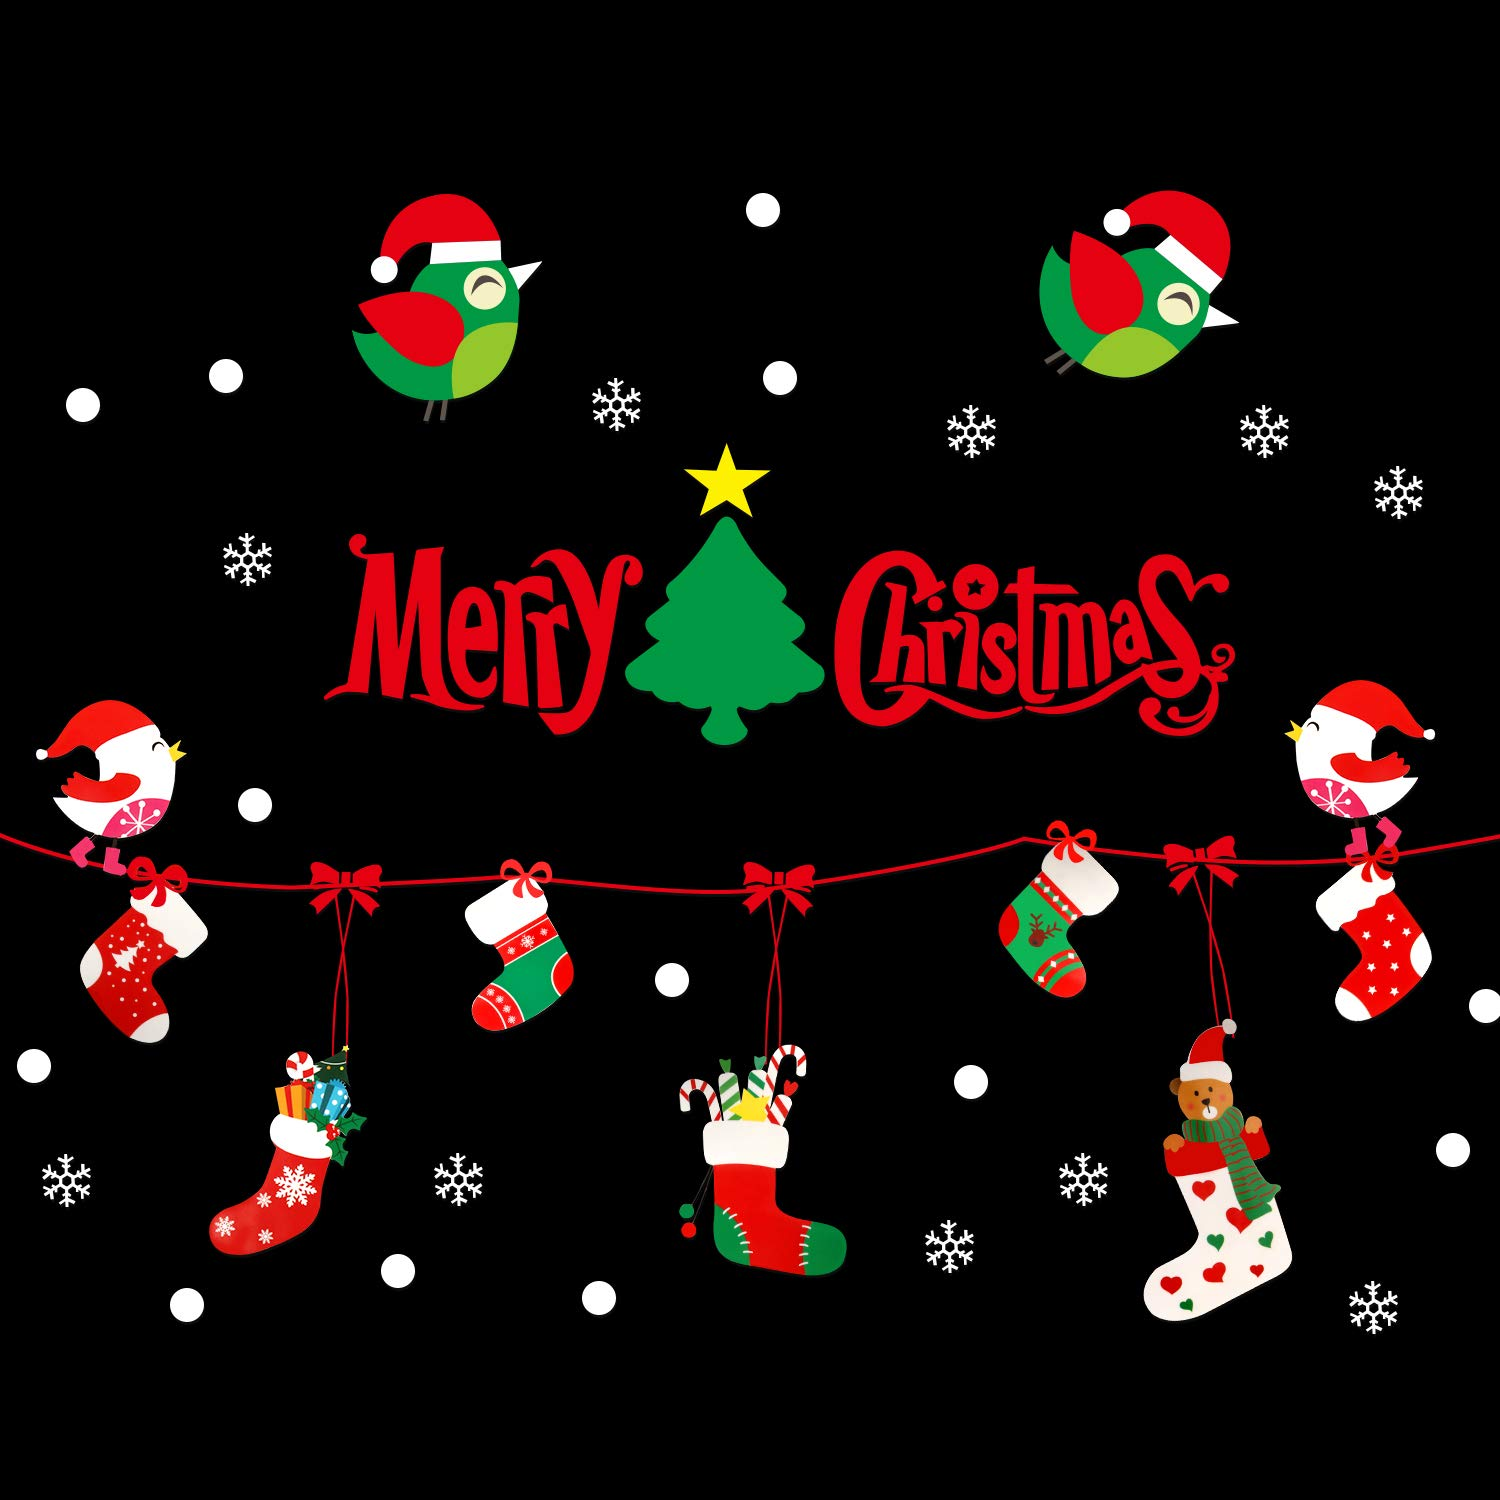 Zenoplige 2018 Newest Christmas Window Clings Decal Wall Stickers, Xmas Snowflake Glass Stickers for Christmas Decorations(L17)